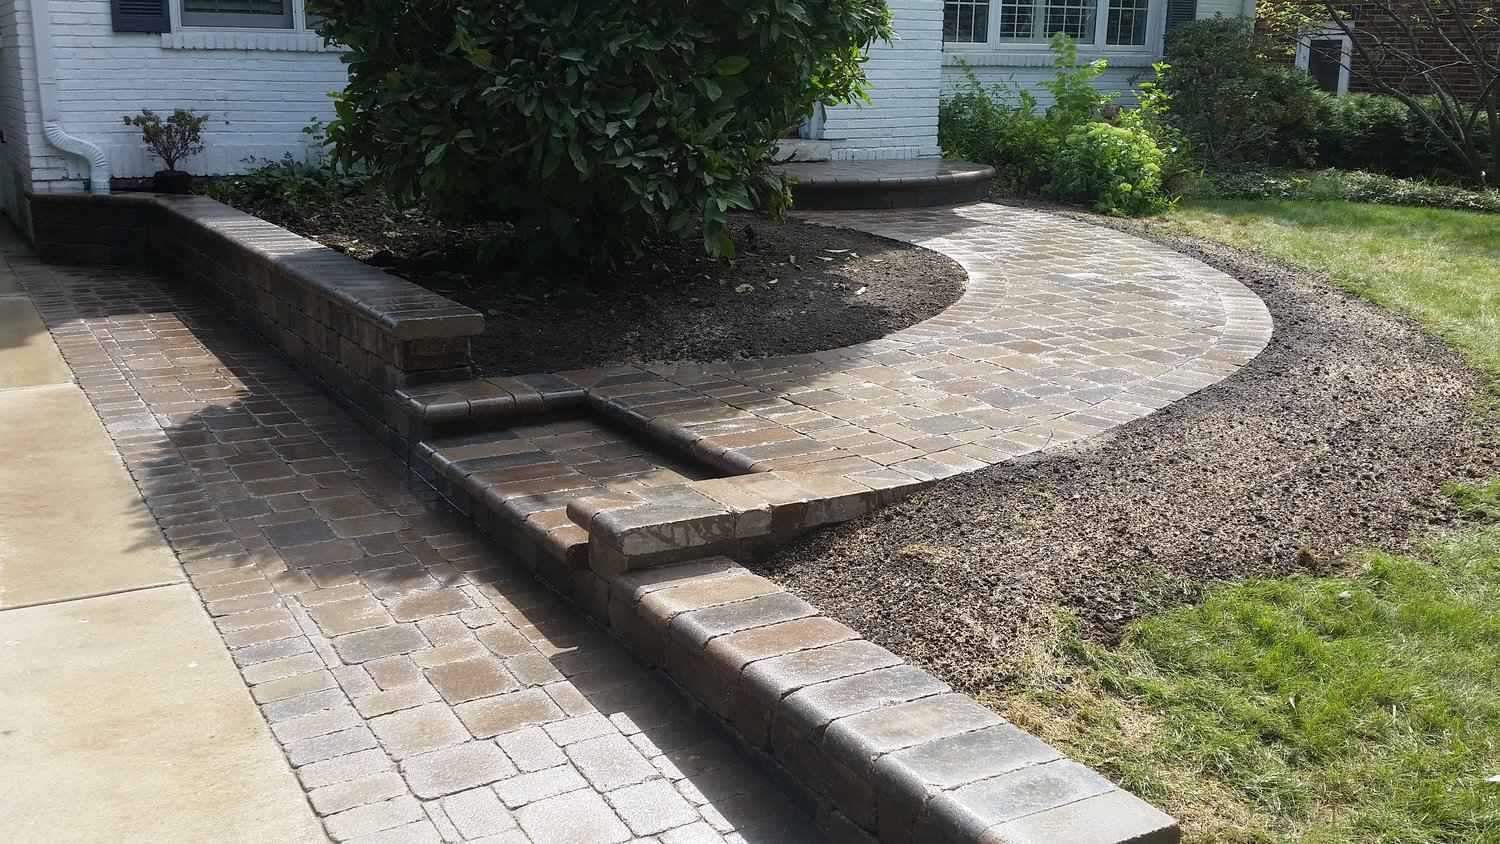 Richardson-Plano TX Professional Landscapers & Outdoor Living Designs-We offer Landscape Design, Outdoor Patios & Pergolas, Outdoor Living Spaces, Stonescapes, Residential & Commercial Landscaping, Irrigation Installation & Repairs, Drainage Systems, Landscape Lighting, Outdoor Living Spaces, Tree Service, Lawn Service, and more.